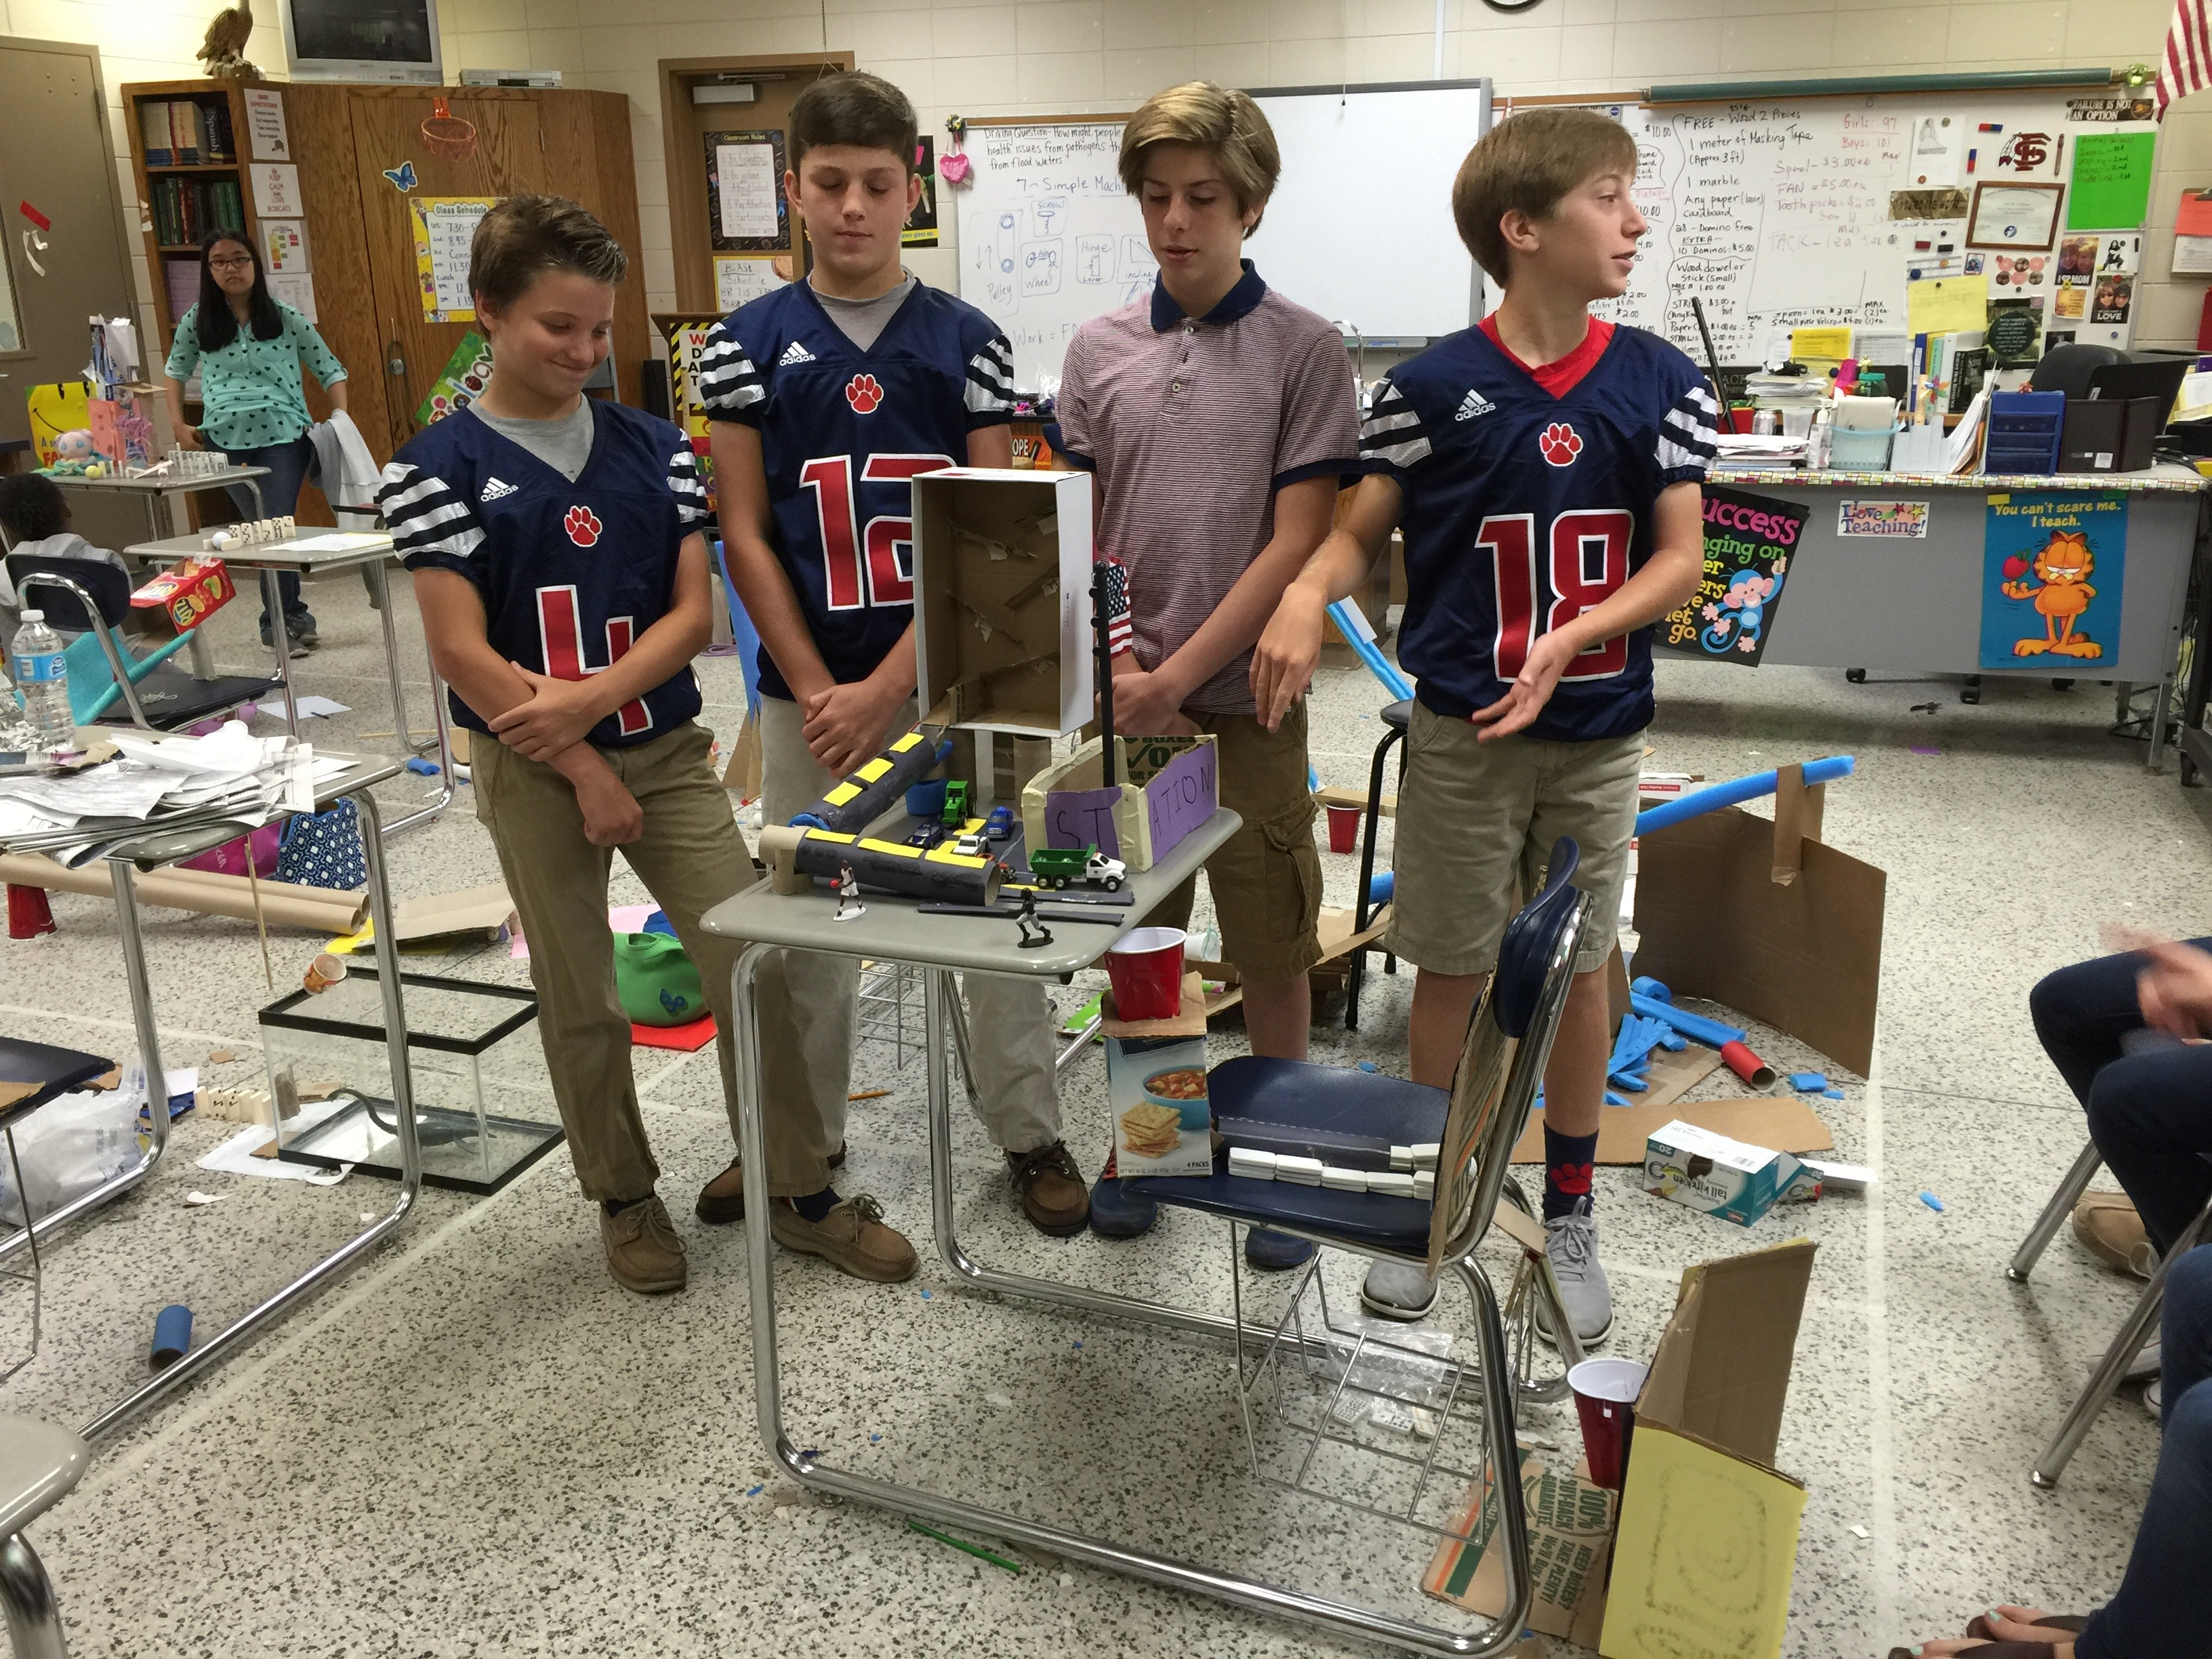 Rube Goldberg Machine Competition